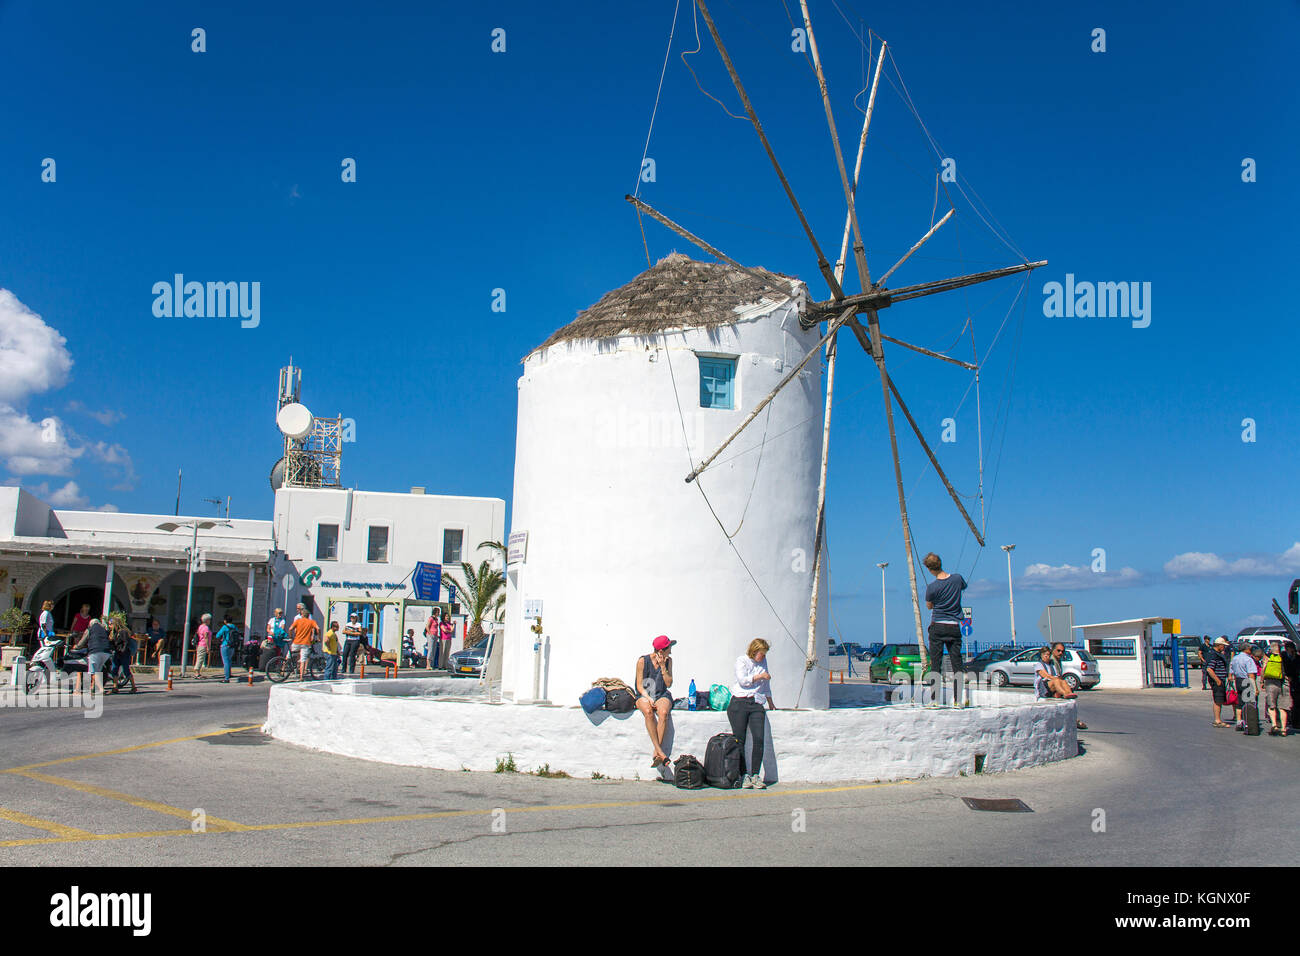 Windmill at the harbour of Parikia, Paros island, Cyclades, Aegean, Greece - Stock Image